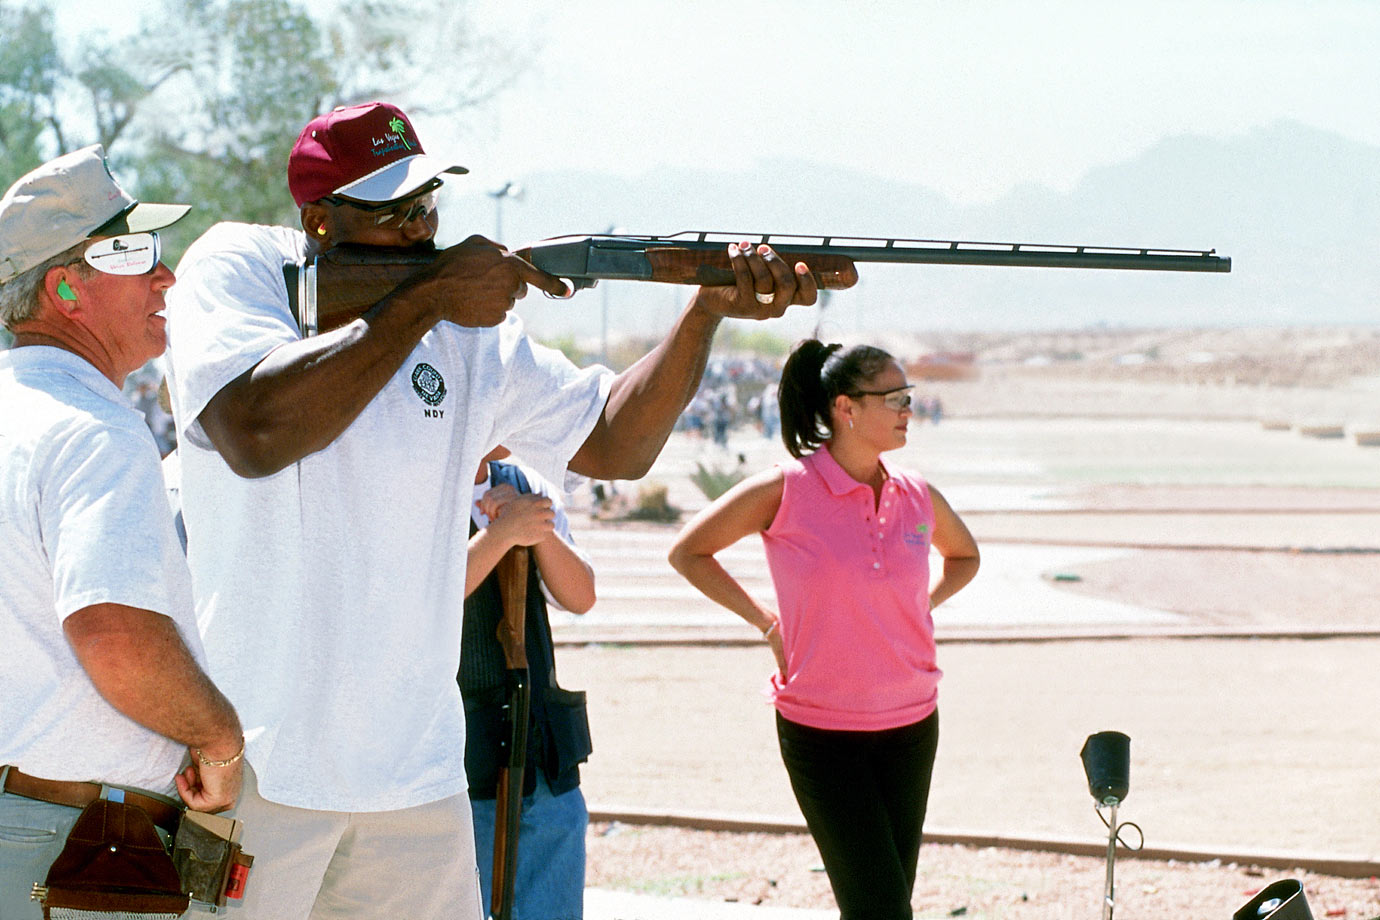 Karl Malone shows off his shooting form.